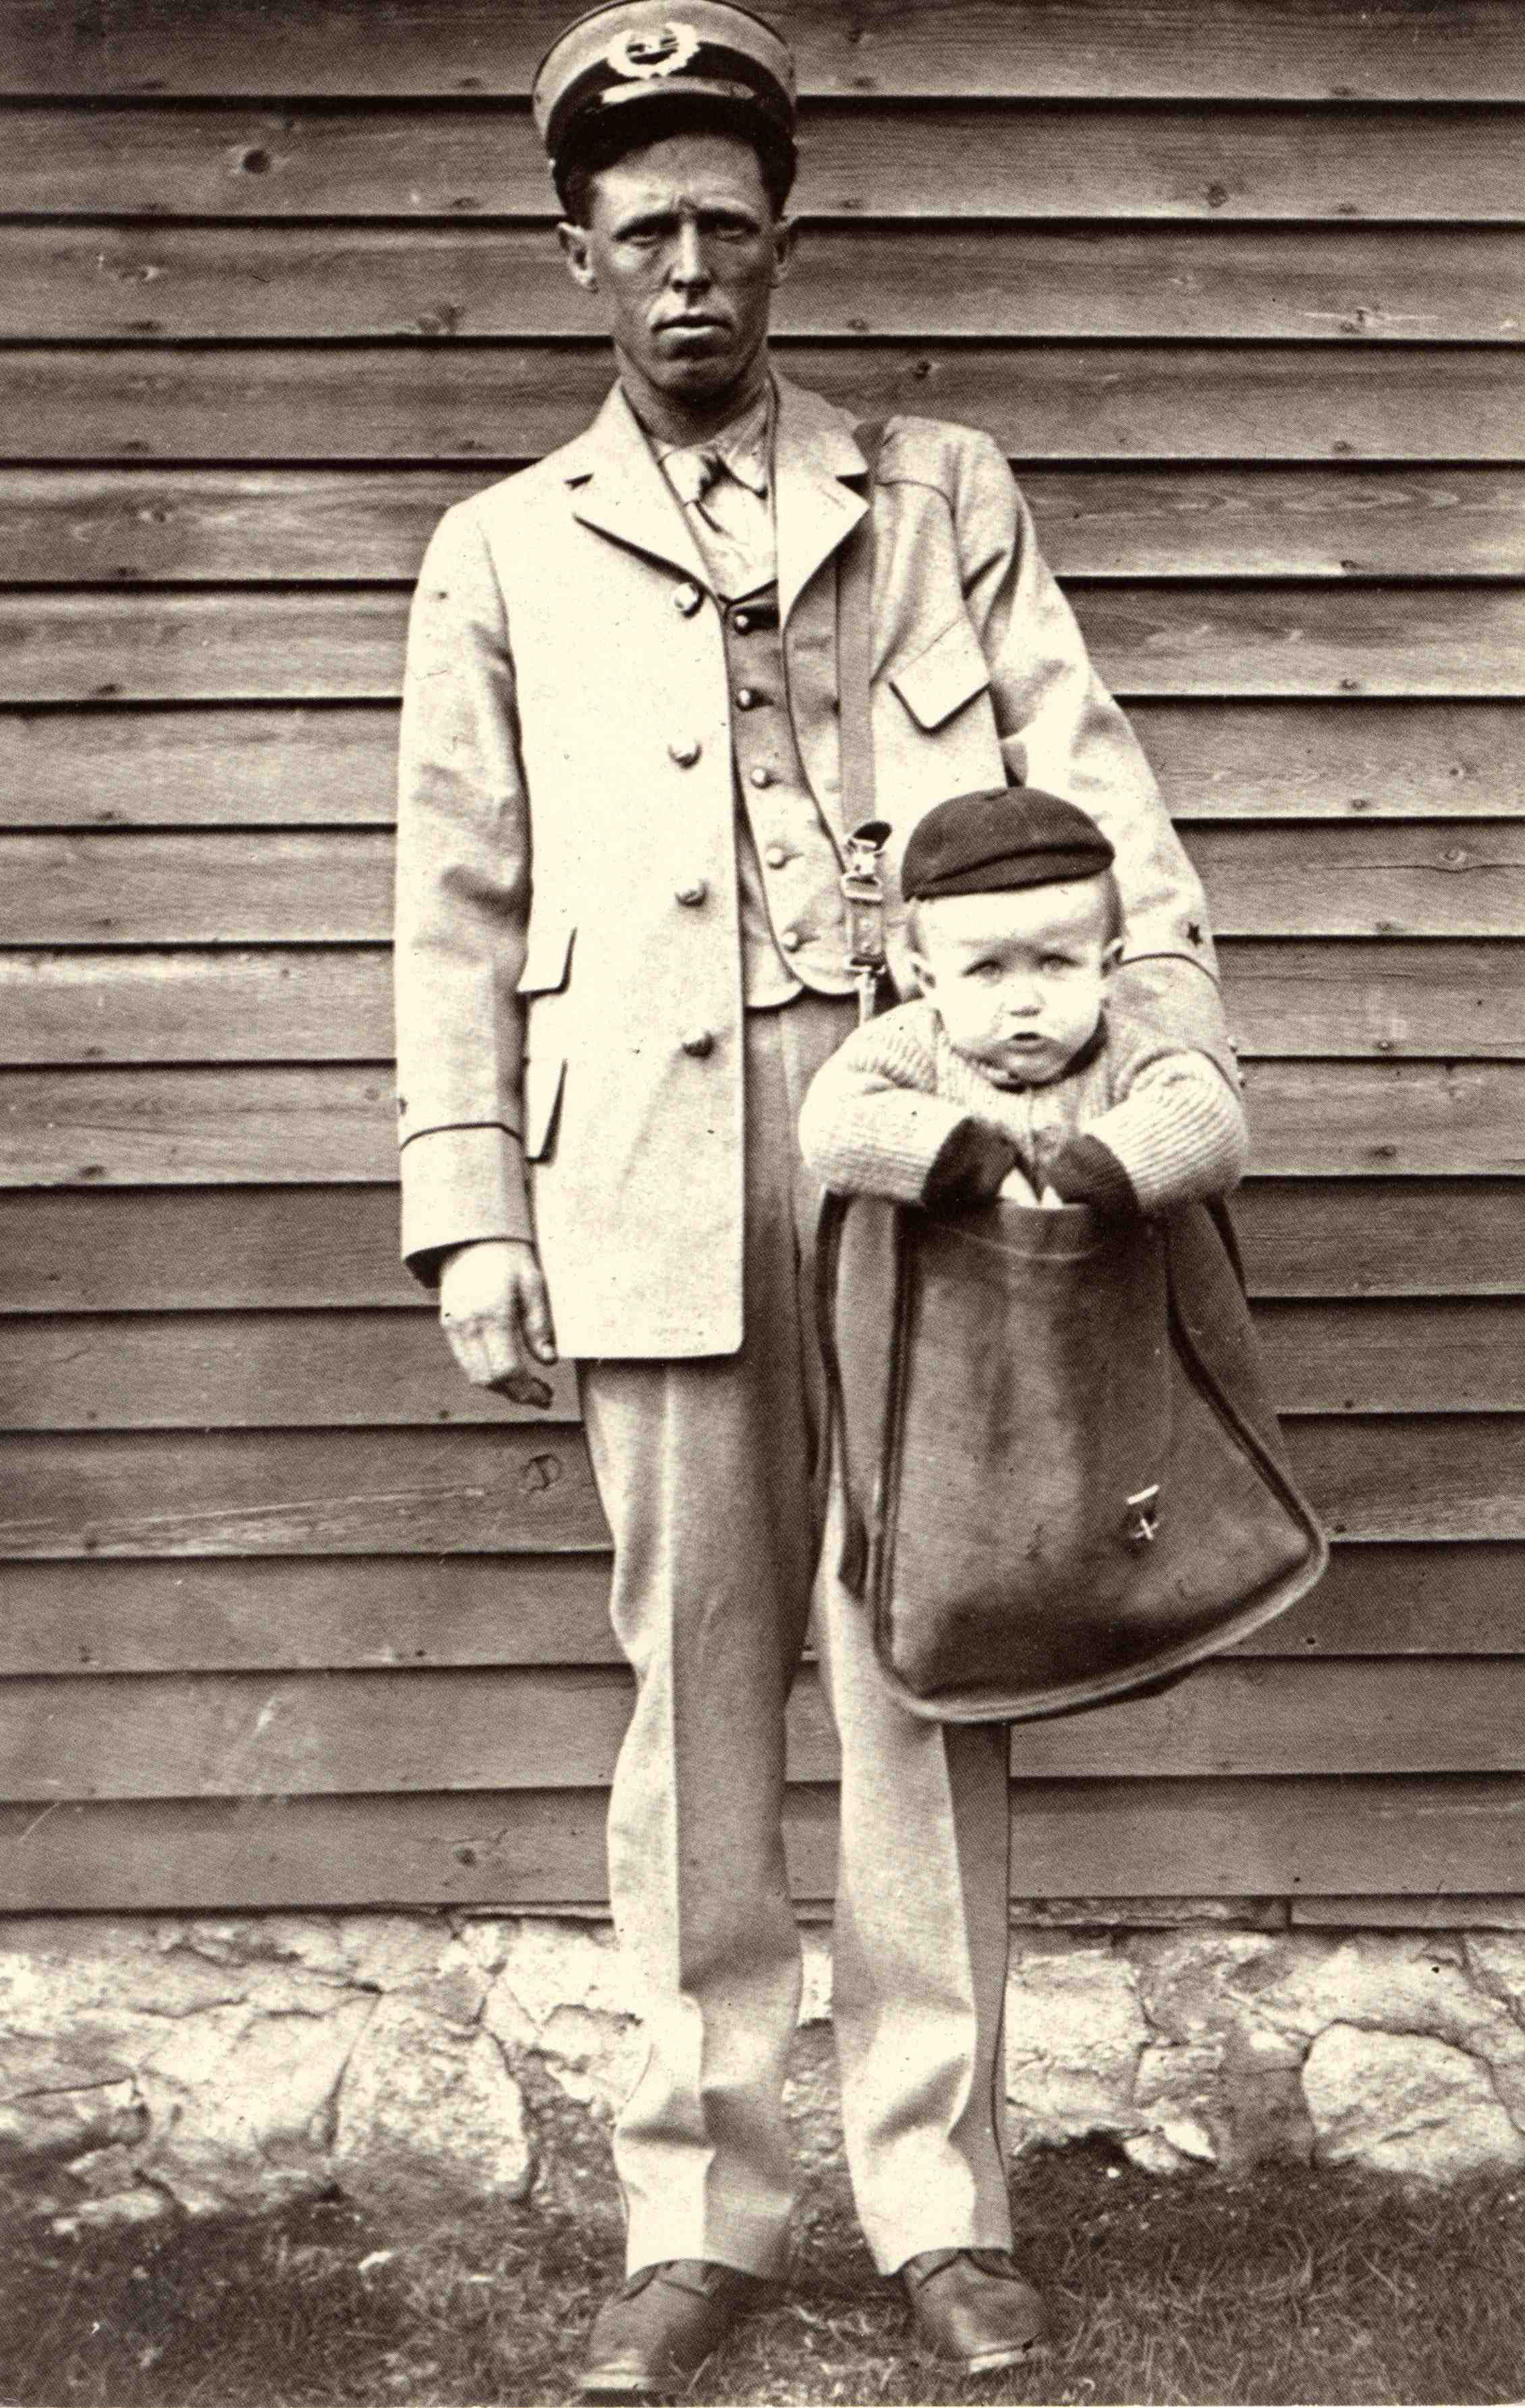 Uniformed_Letter_Carrier_with_Child_in_Mailbag1-2